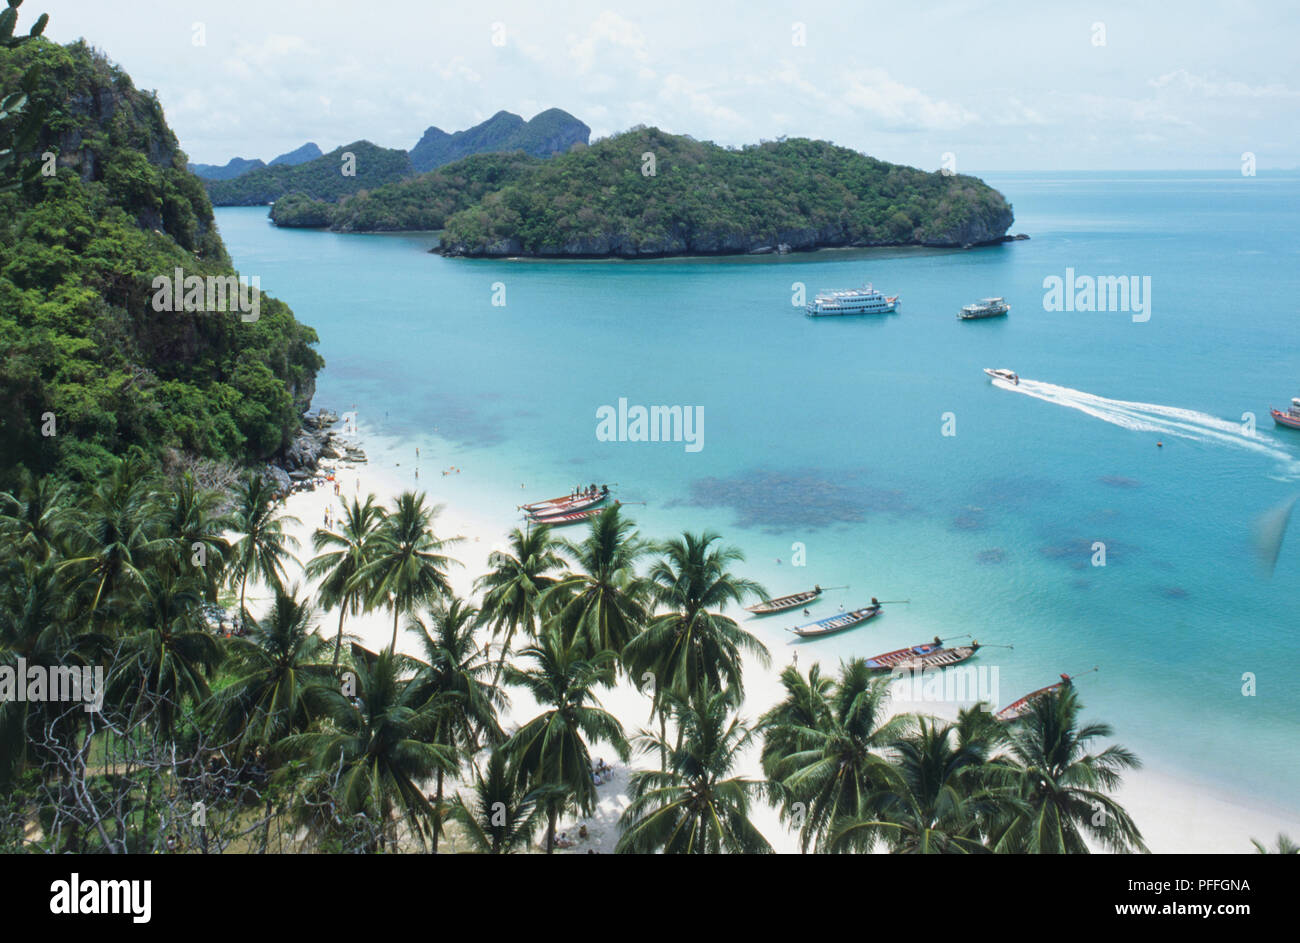 Talab Islands: attractions, photo